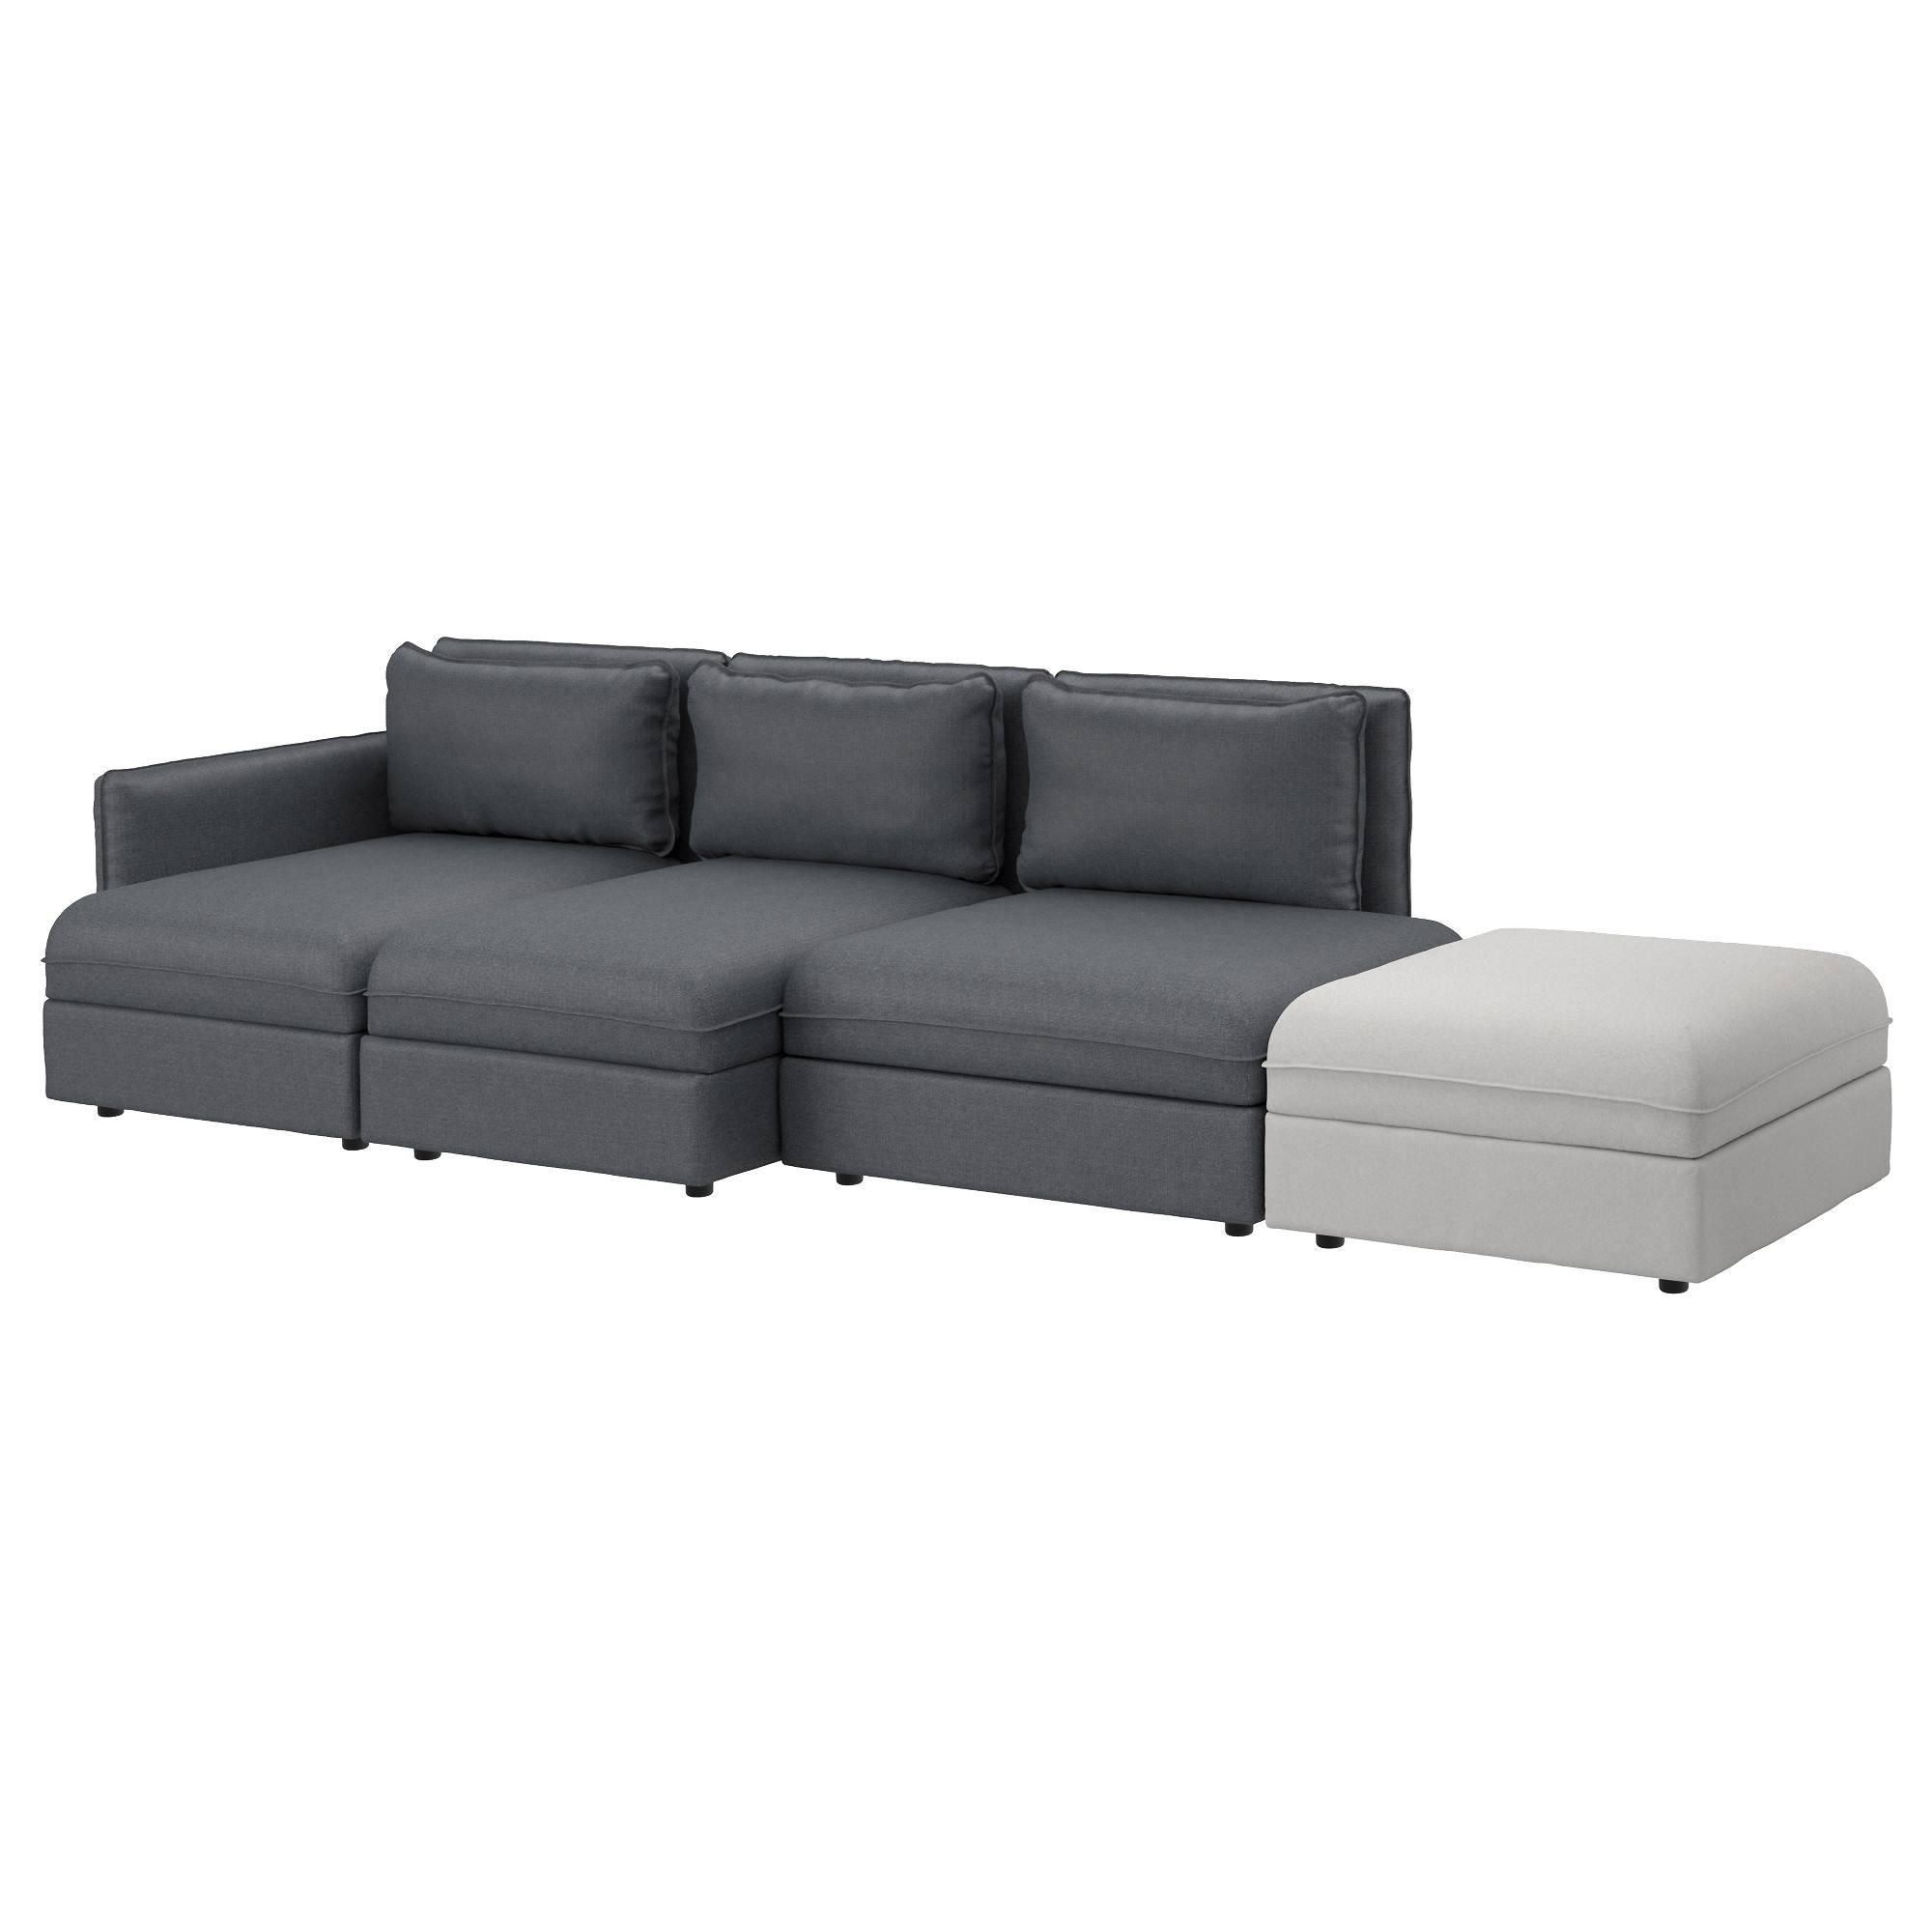 Www.ikea/piaimages/0426412_Pe583320_S5 for Compact Sectional Sofas (Image 26 of 30)